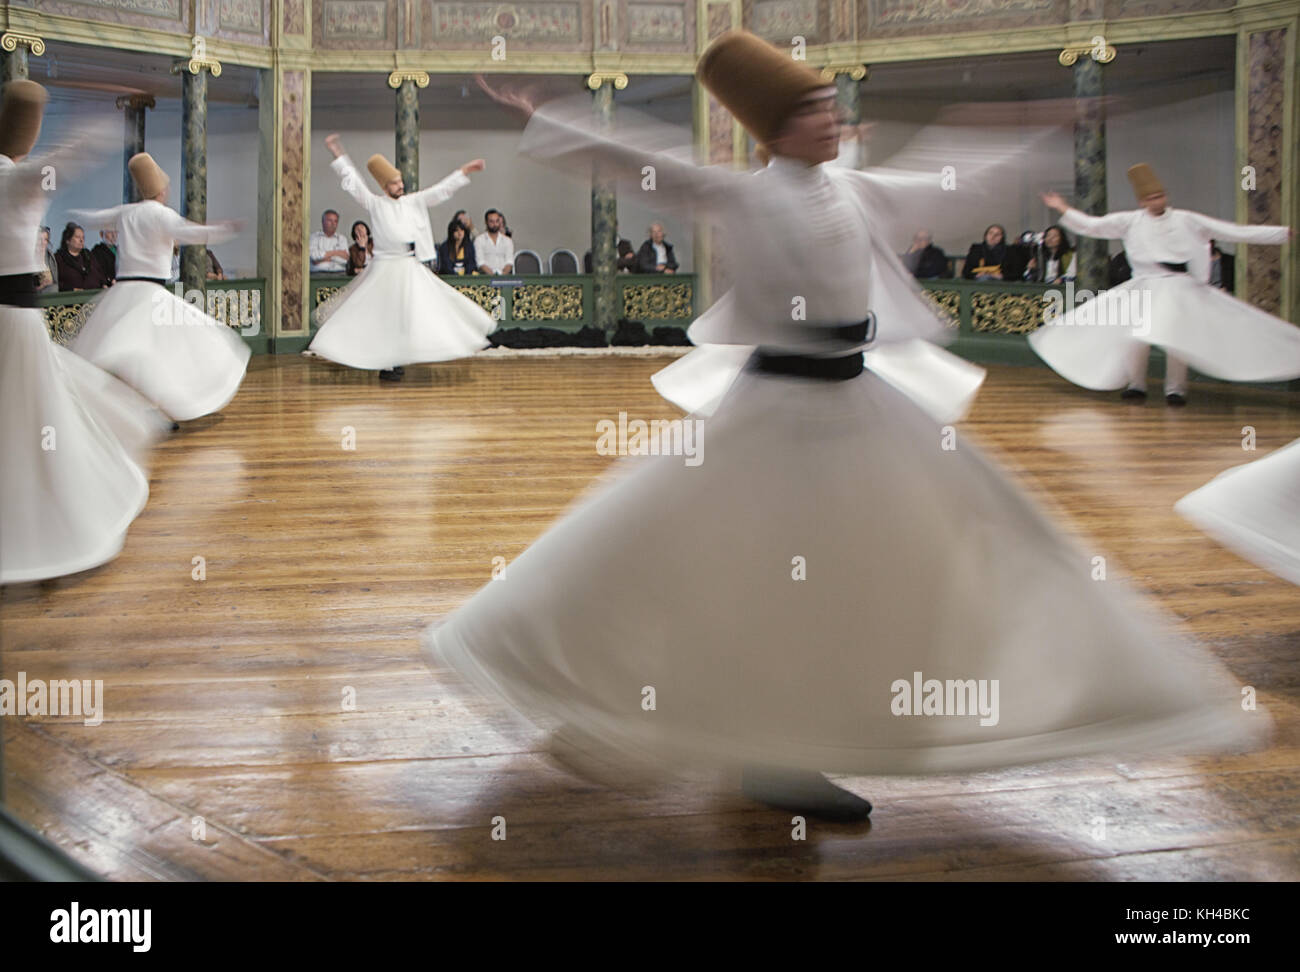 Blurred Whirling Dervishes practice their dance in Istanbul, Turkey on Apr 30, 2016 - Stock Image